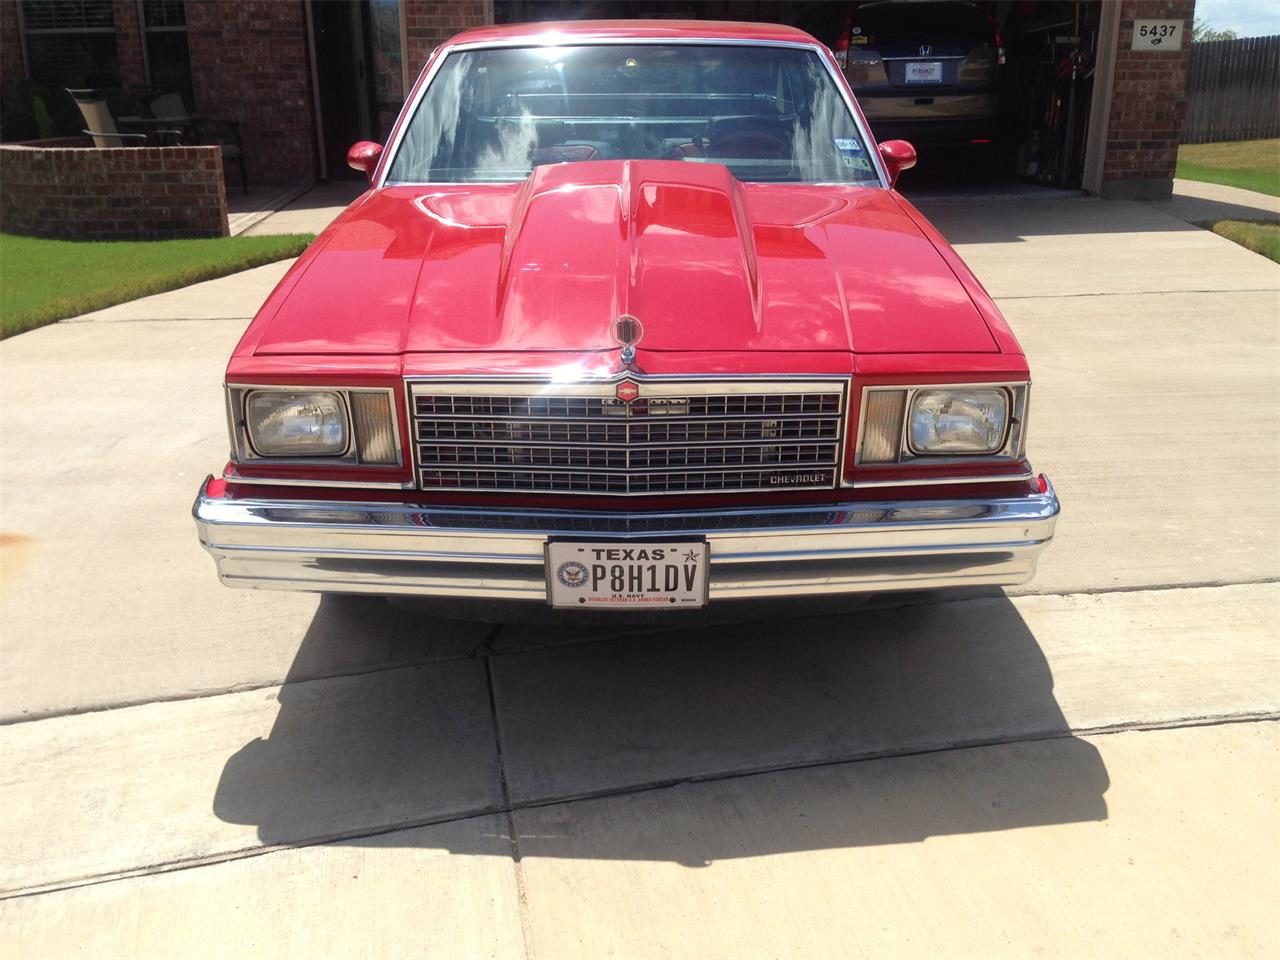 Large Picture of 1979 El Camino located in Texas - $17,500.00 Offered by a Private Seller - PZT5